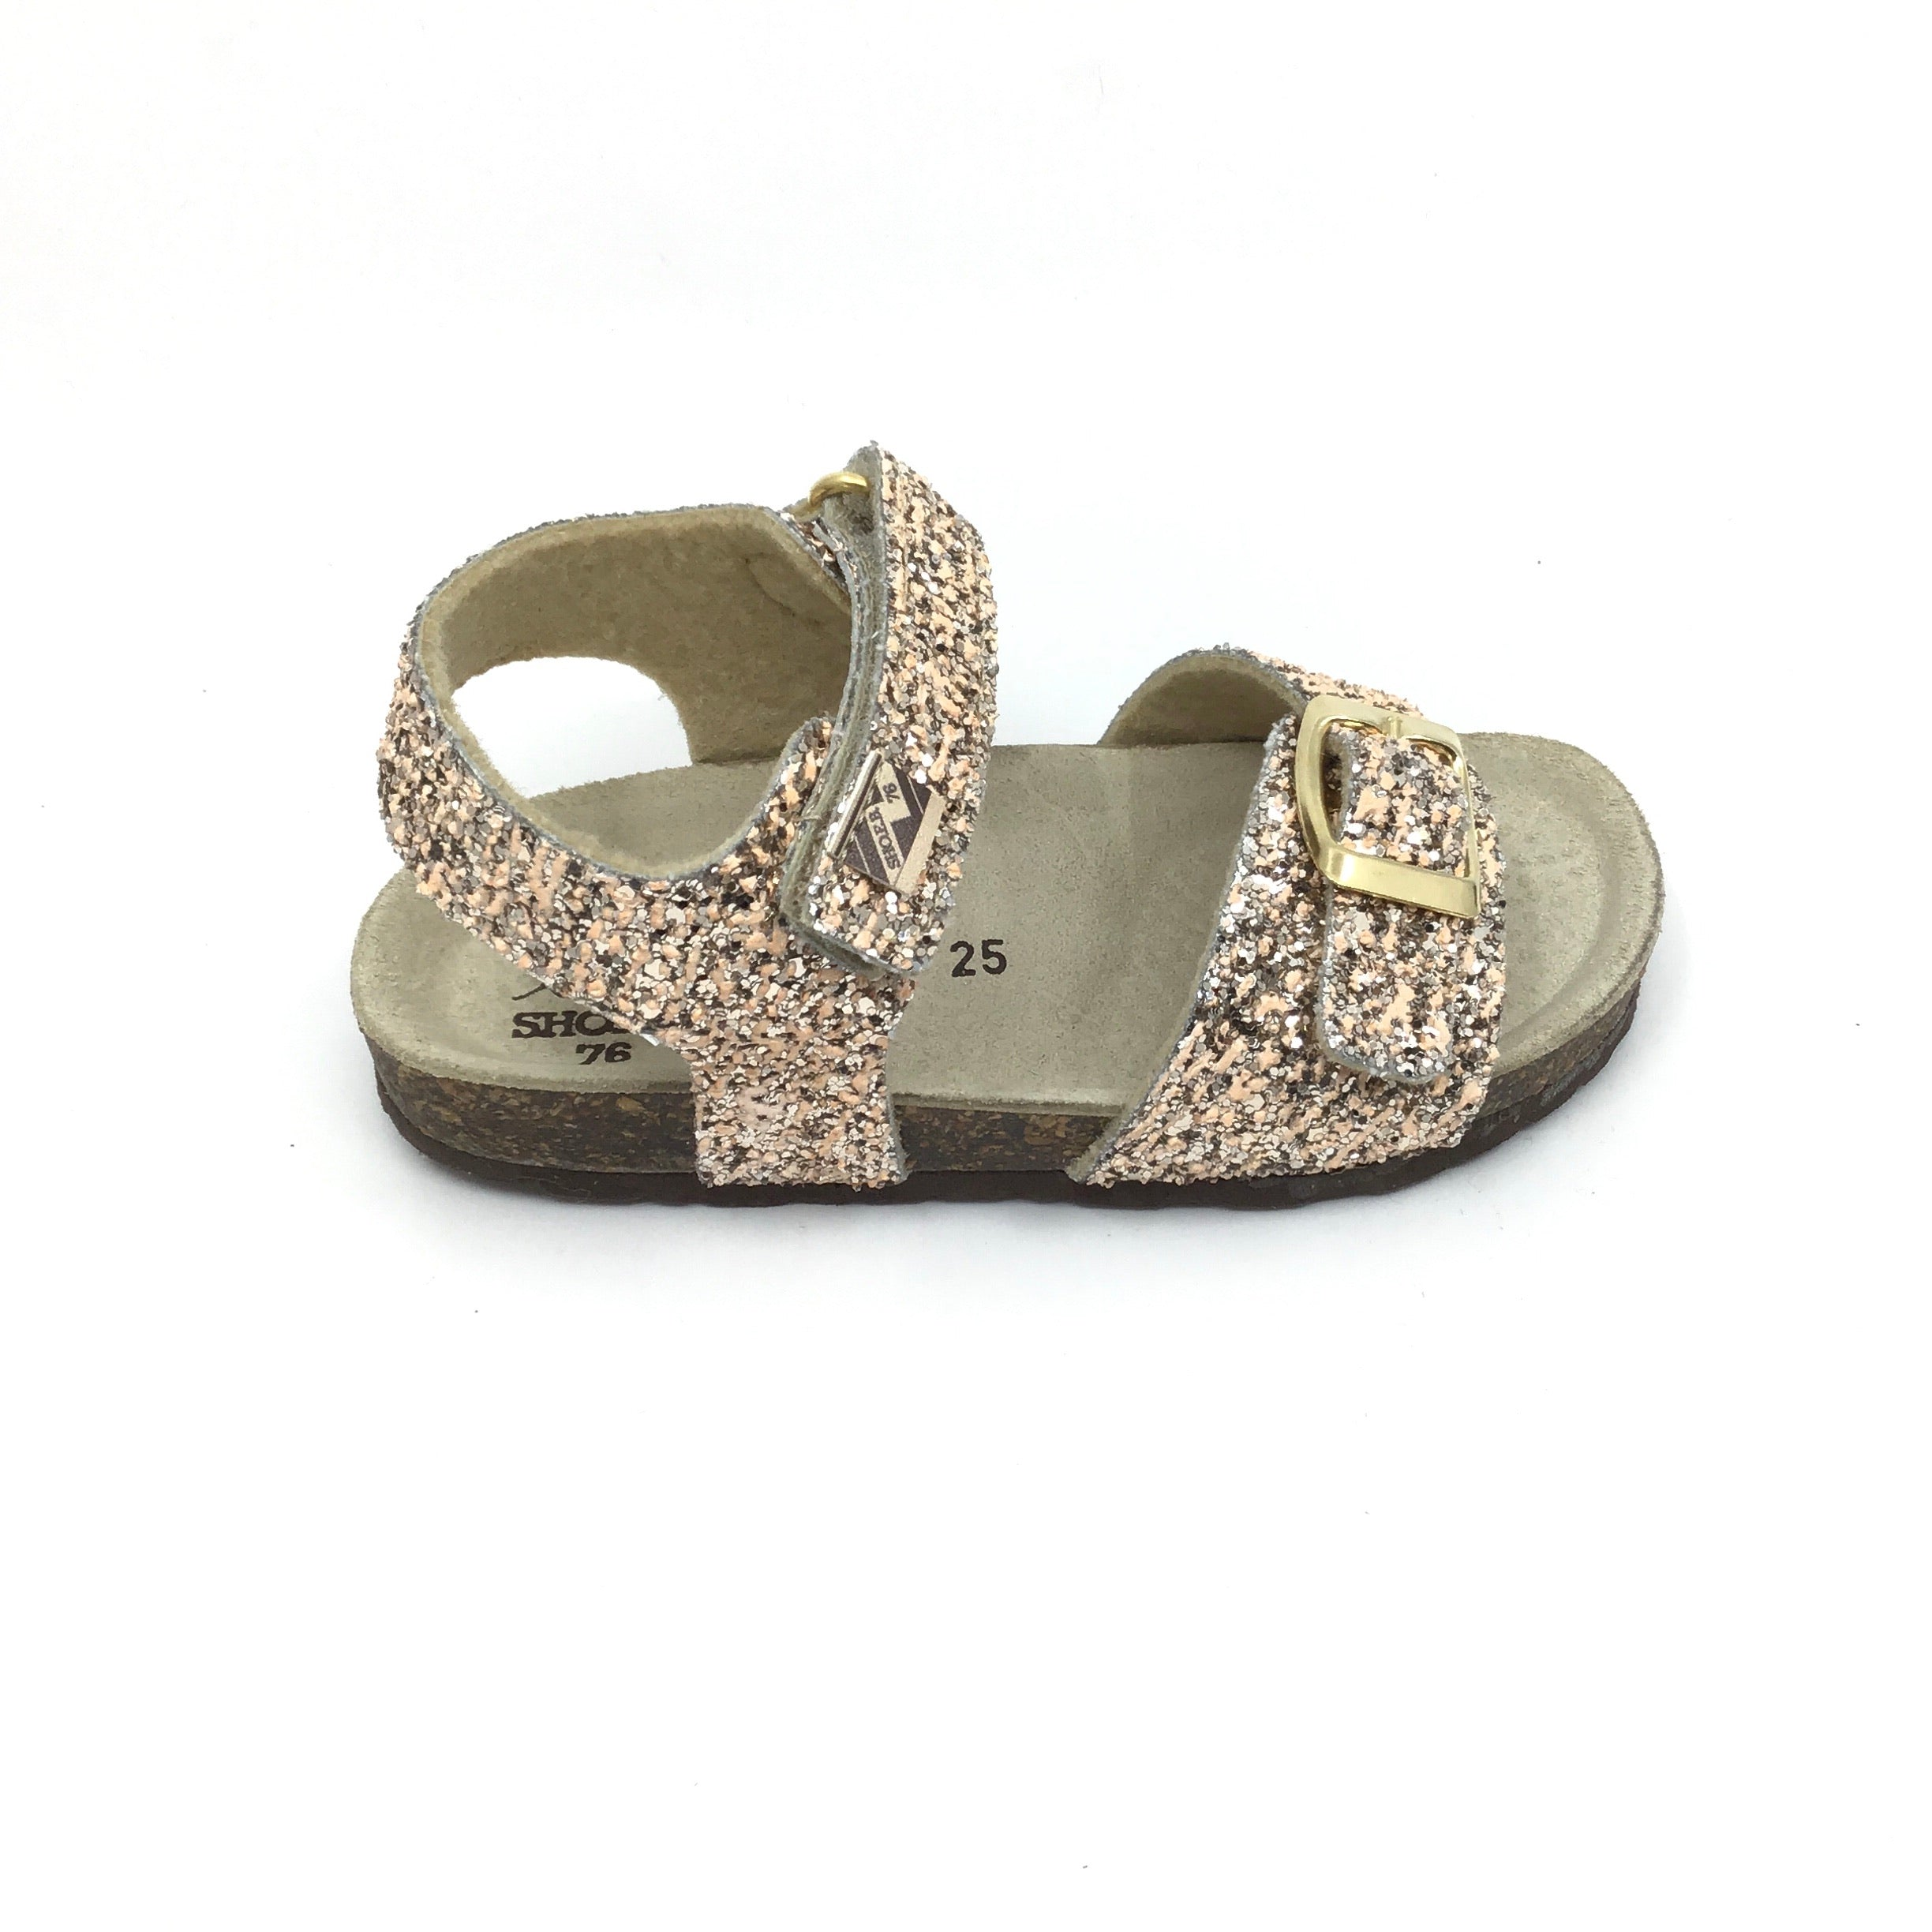 ShoeB76 Gold Glitter Sandal